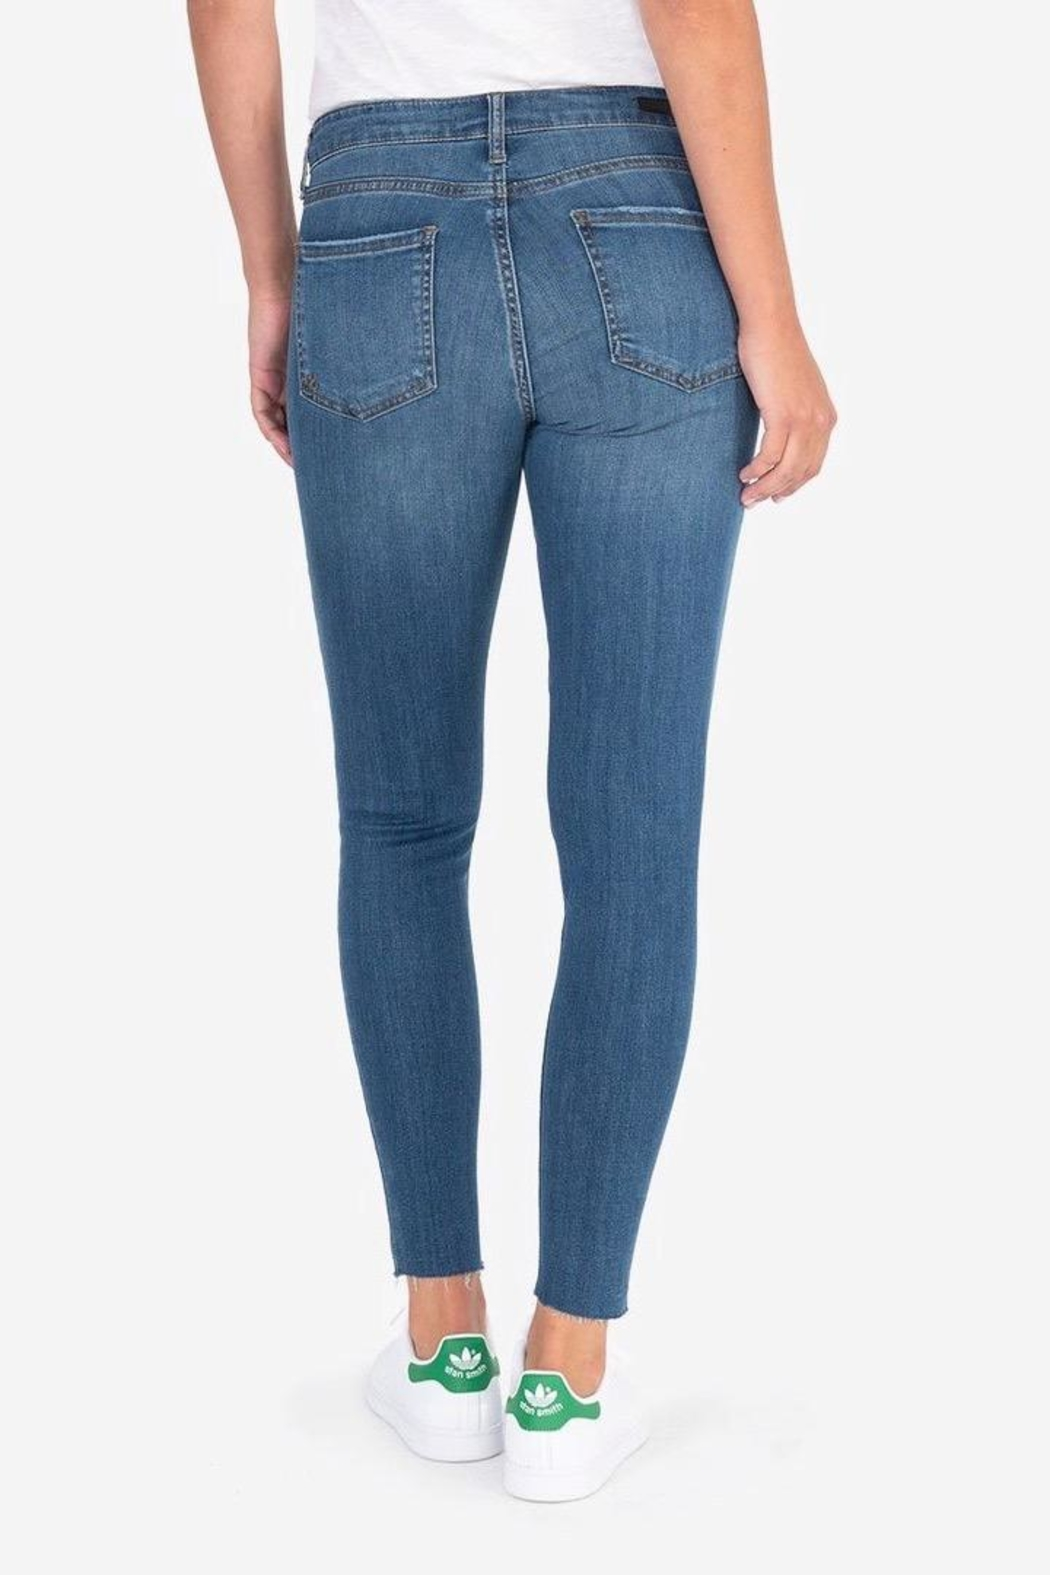 Kut from the Kloth Donna Ankle Skinny - Back Cropped Image